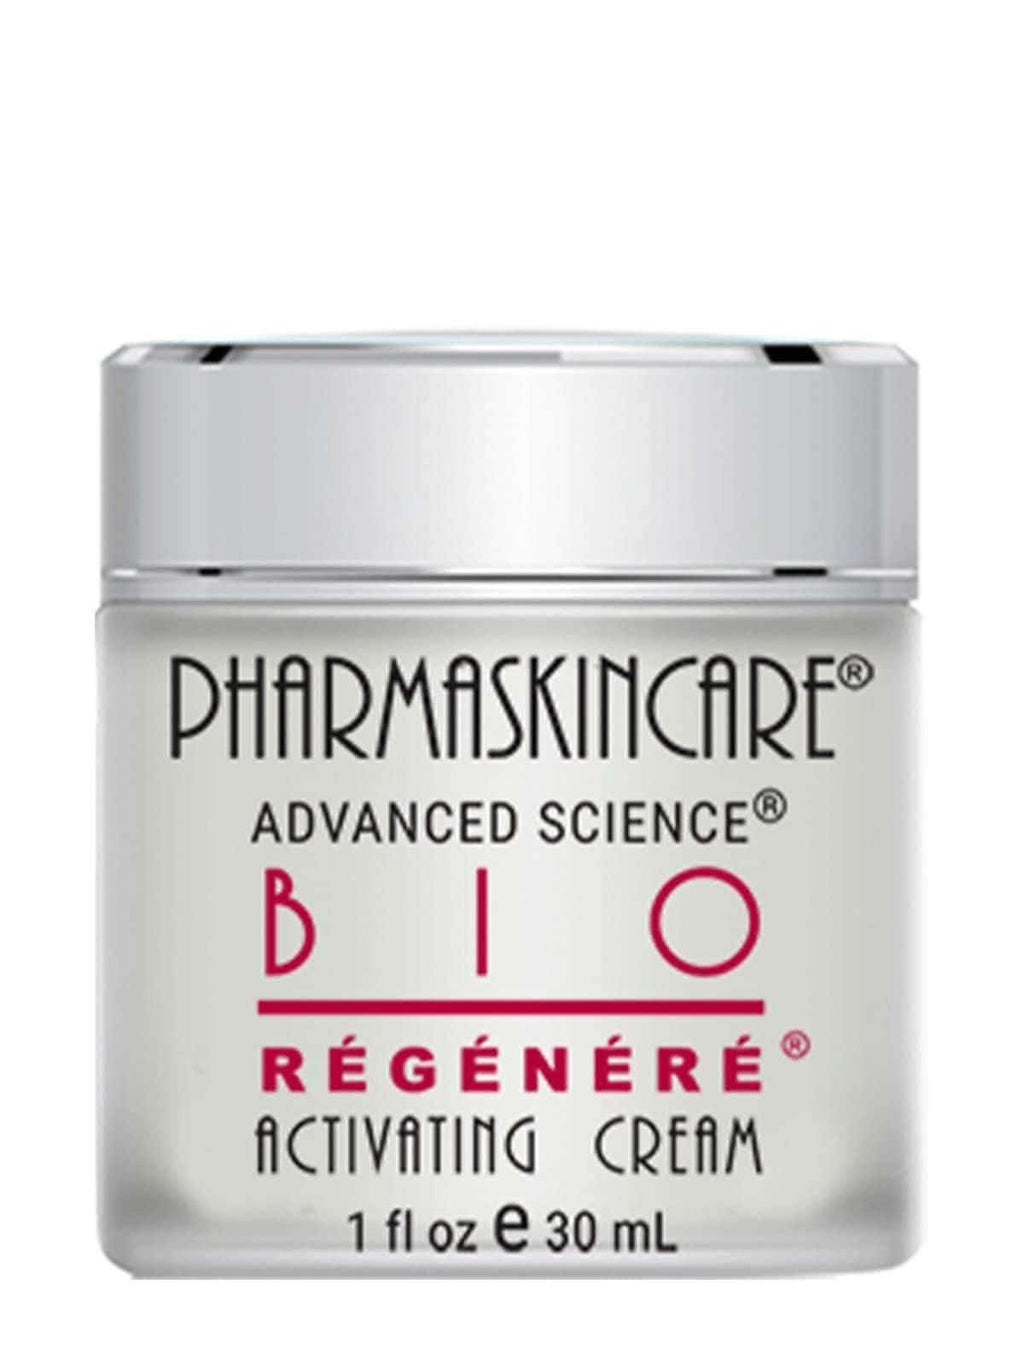 Bio Regenere Activating Cream - Pharmaskincare